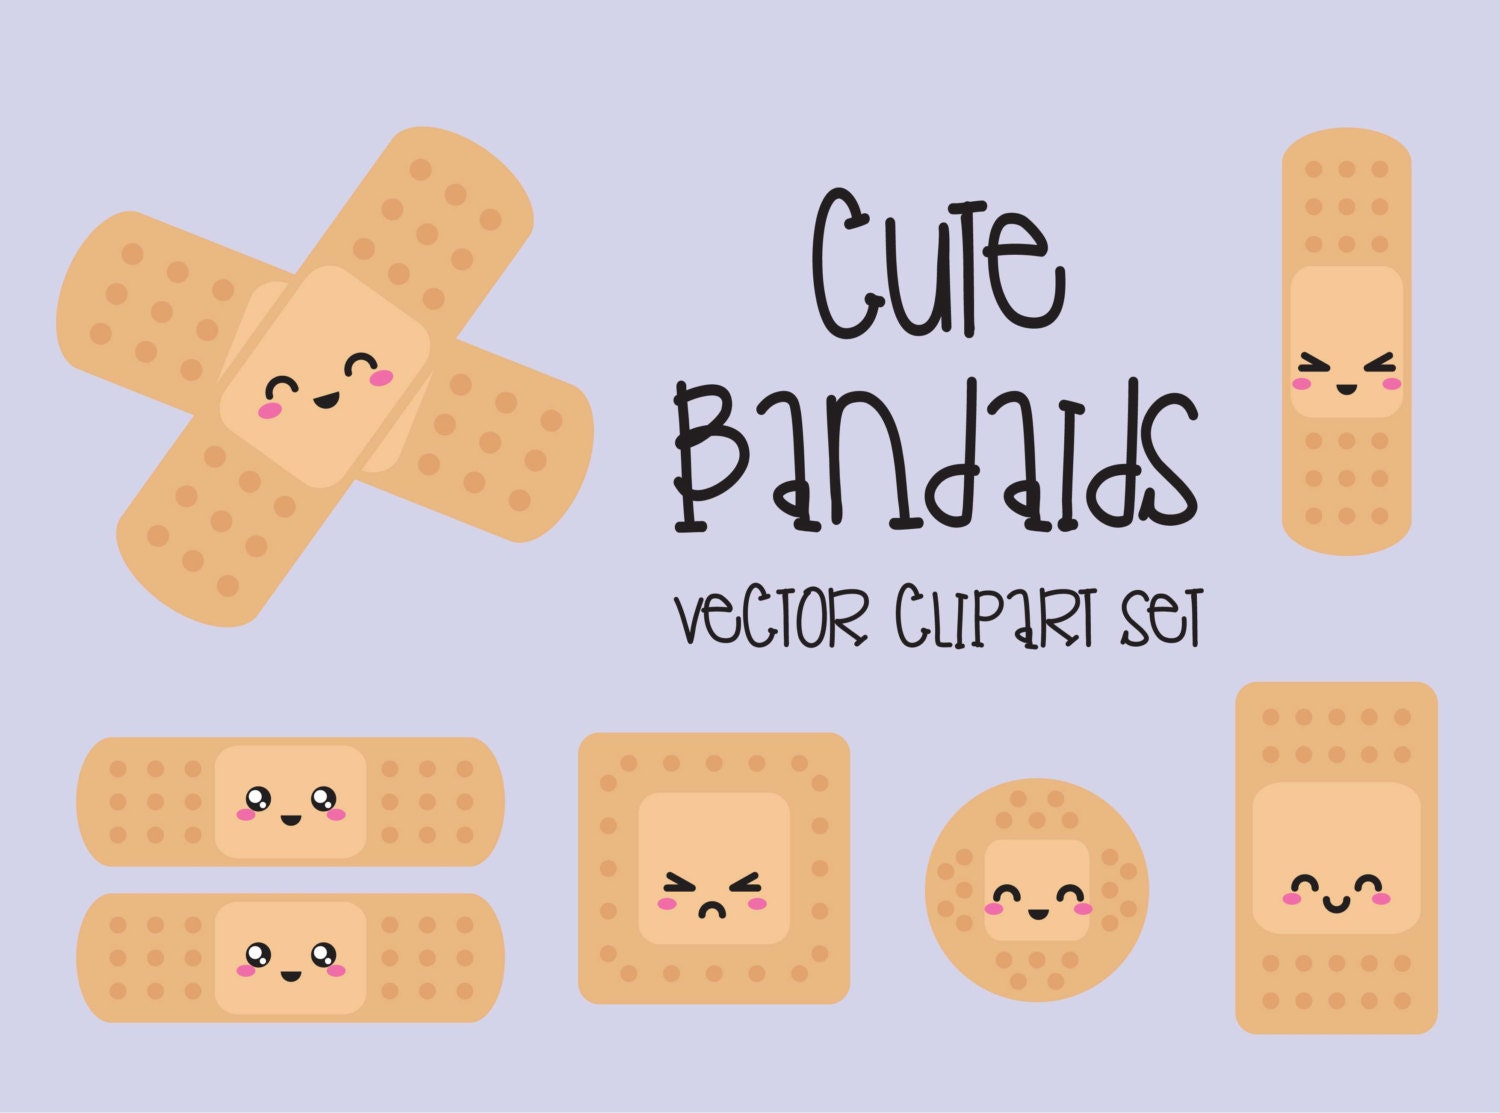 bandaid clipart cute - photo #16